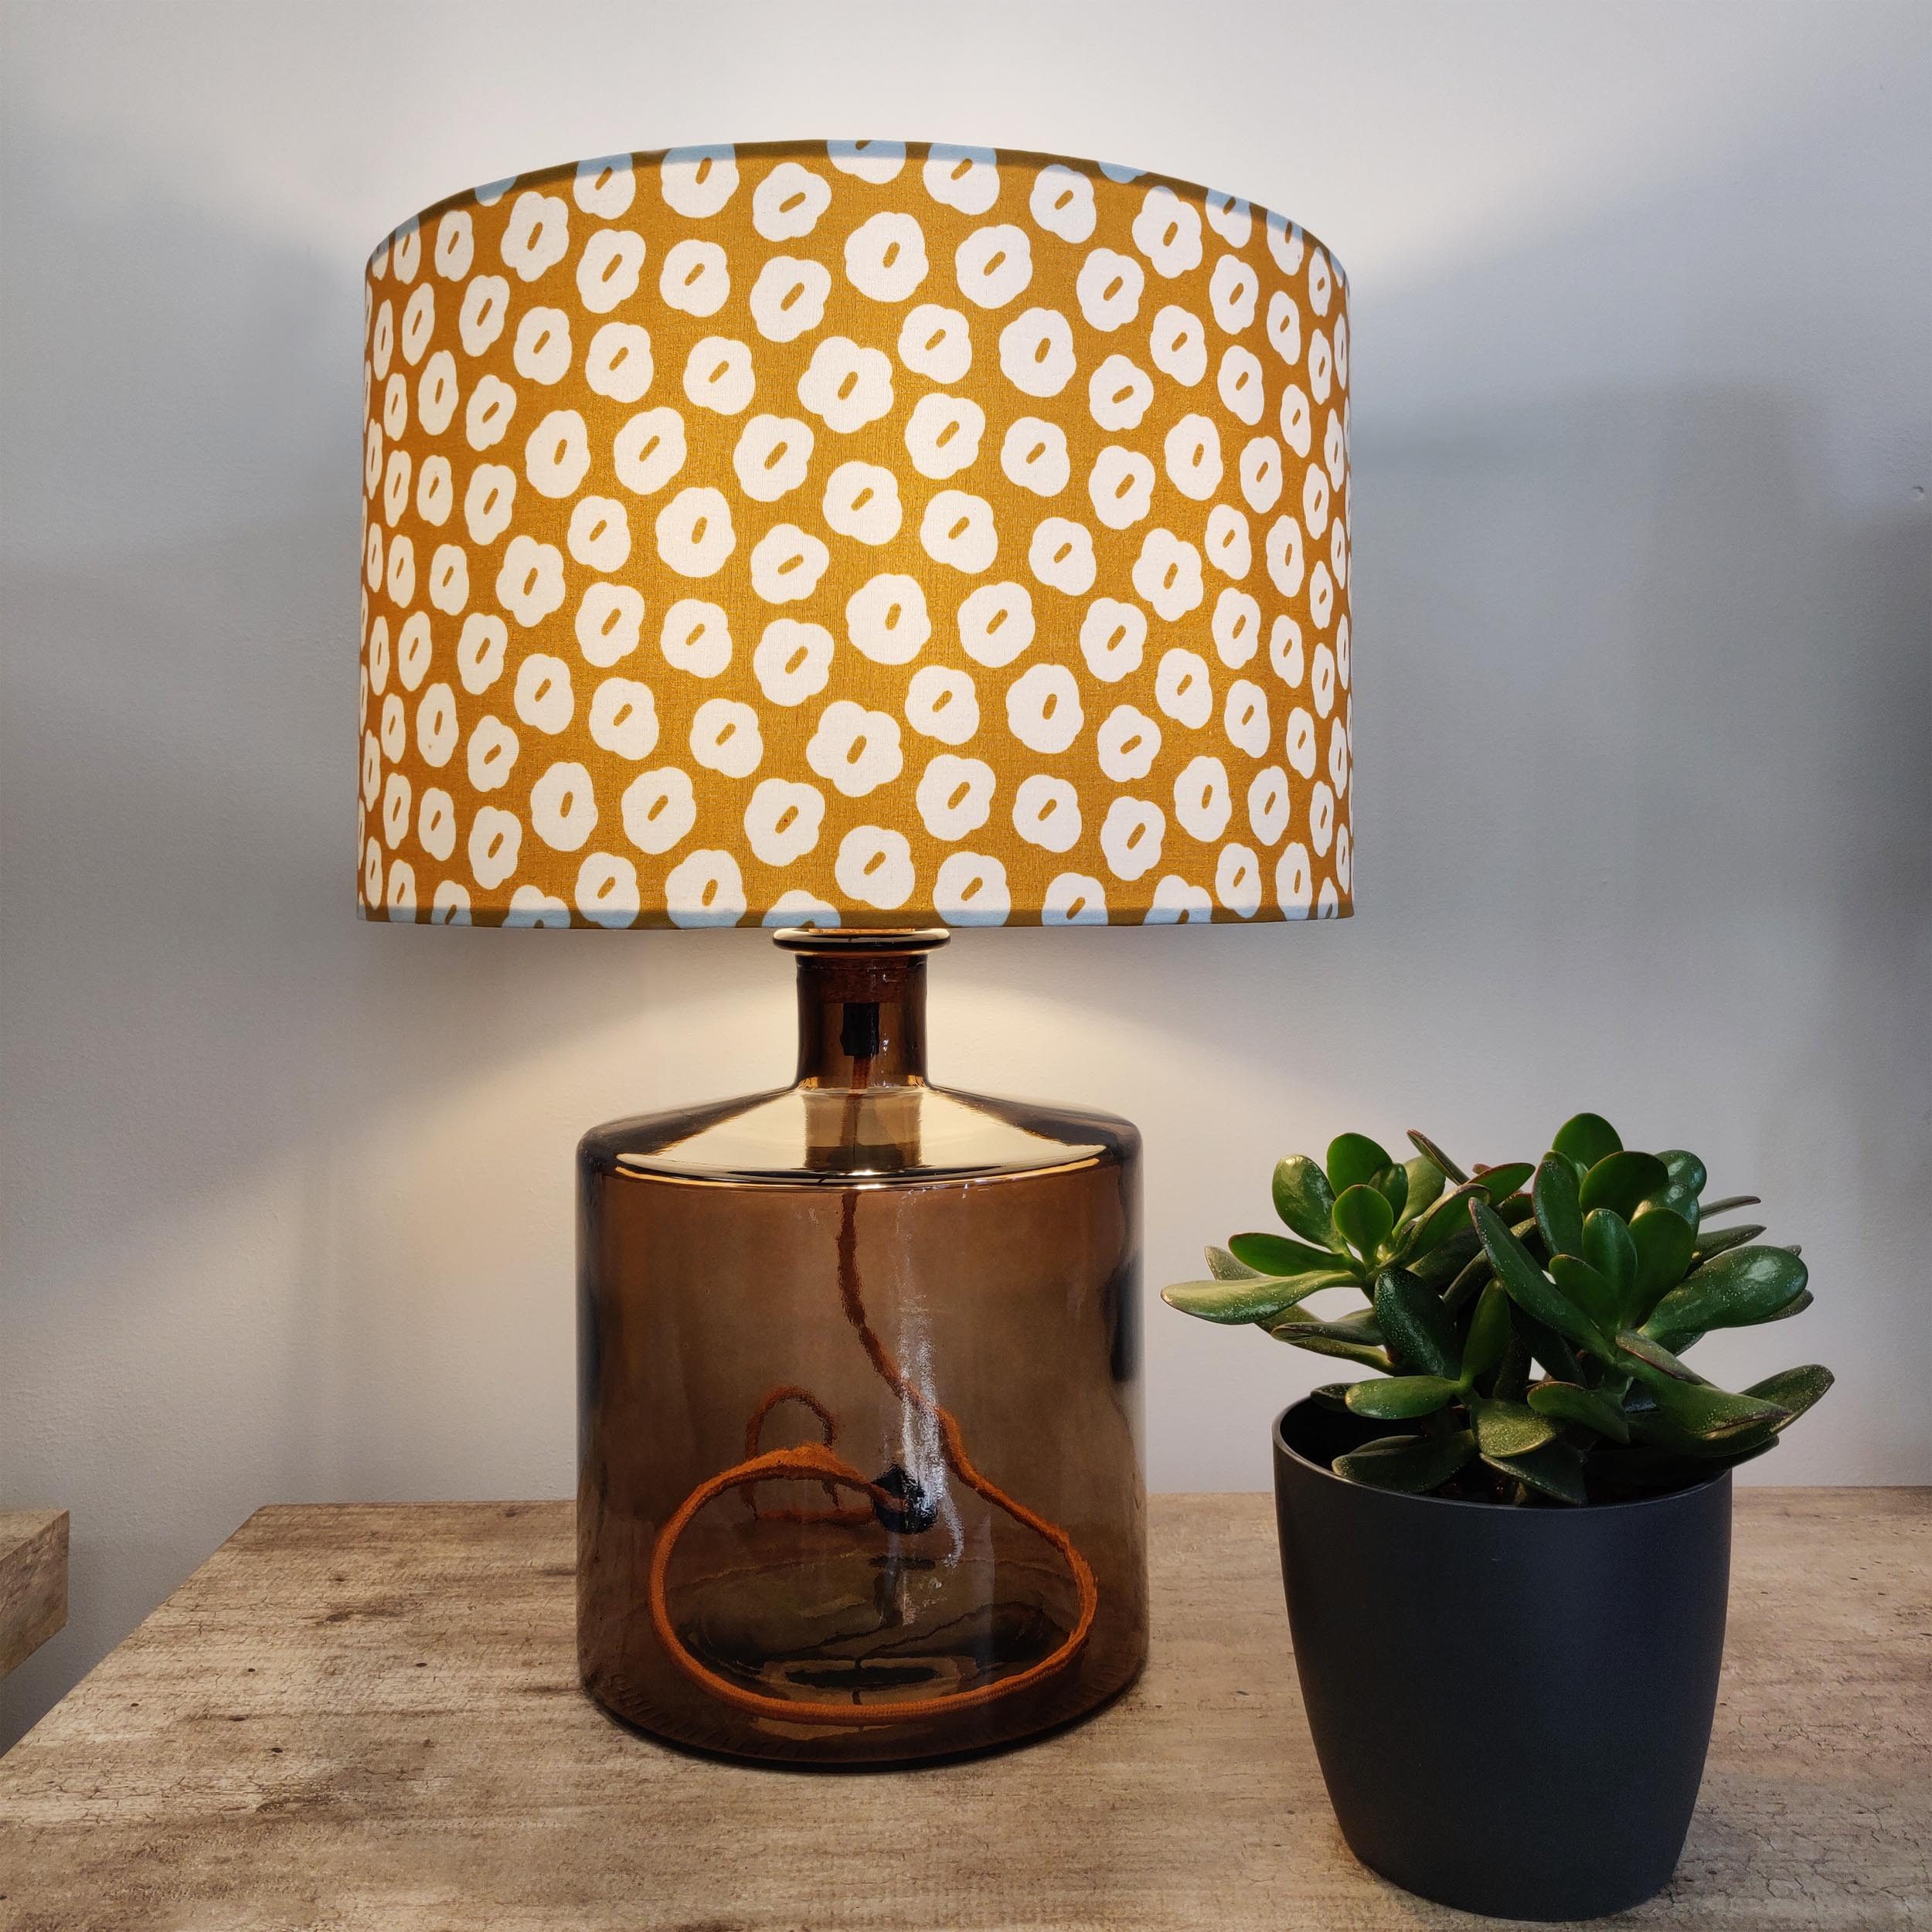 Amber Glass Lamp, recycled with Gold Flex Cable